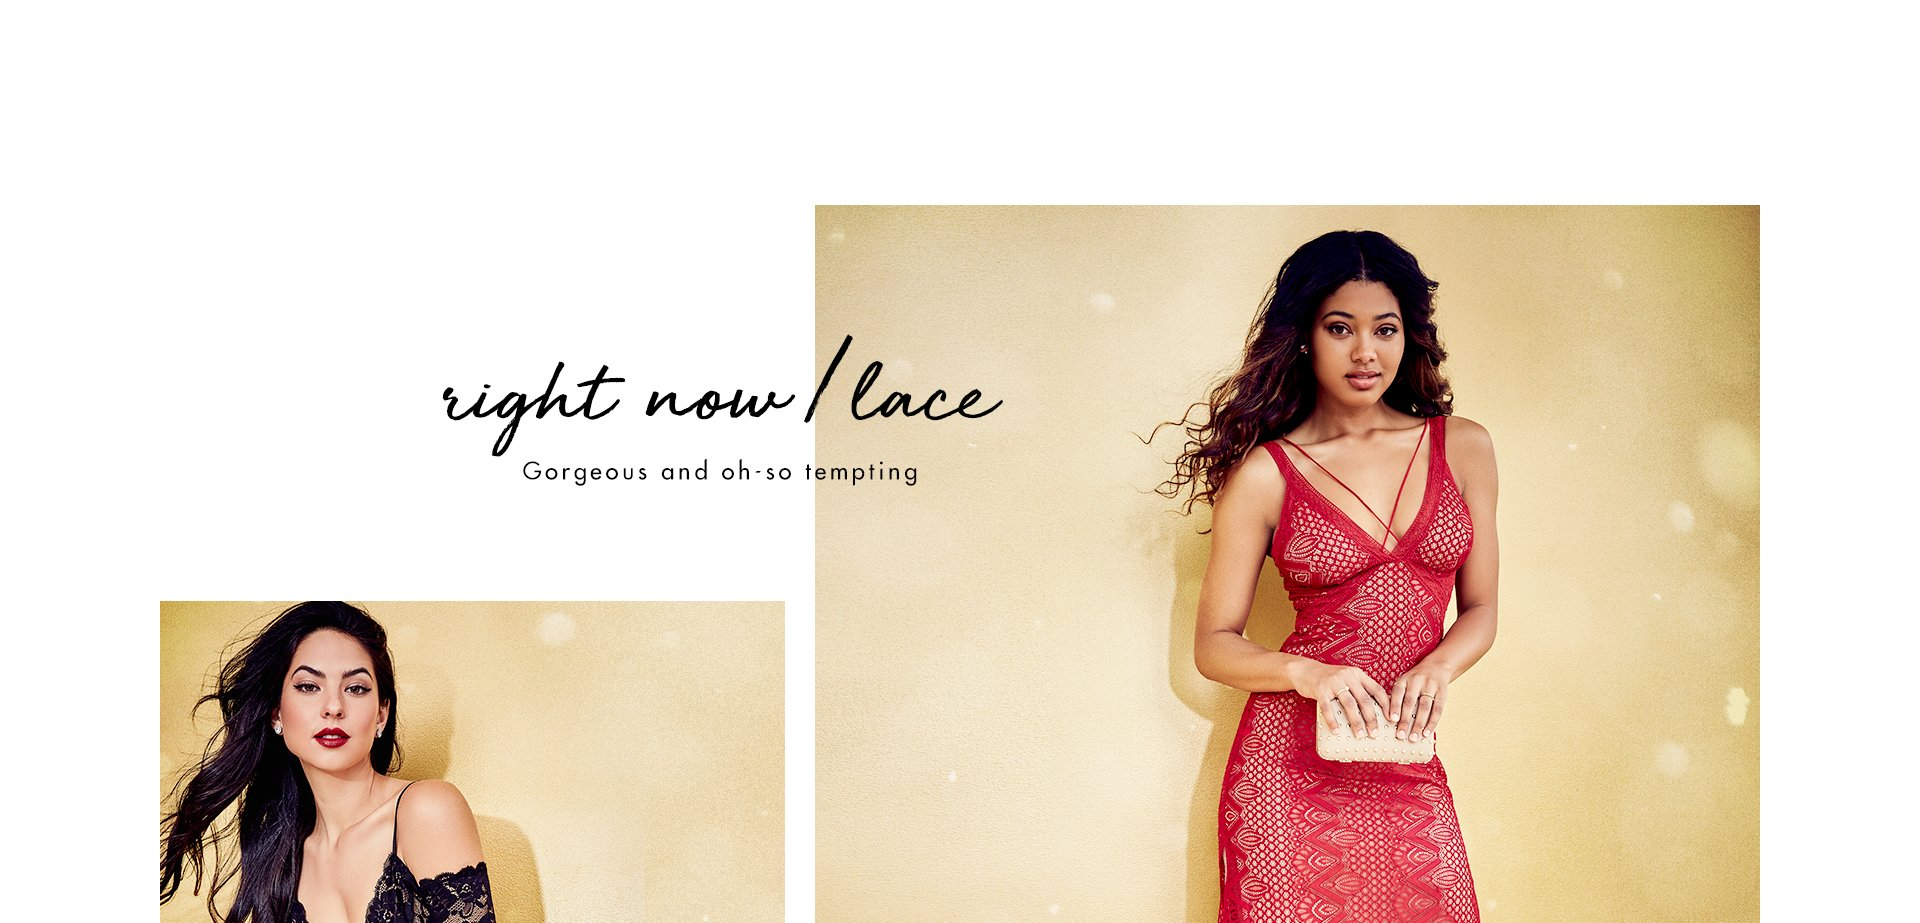 right now/lace